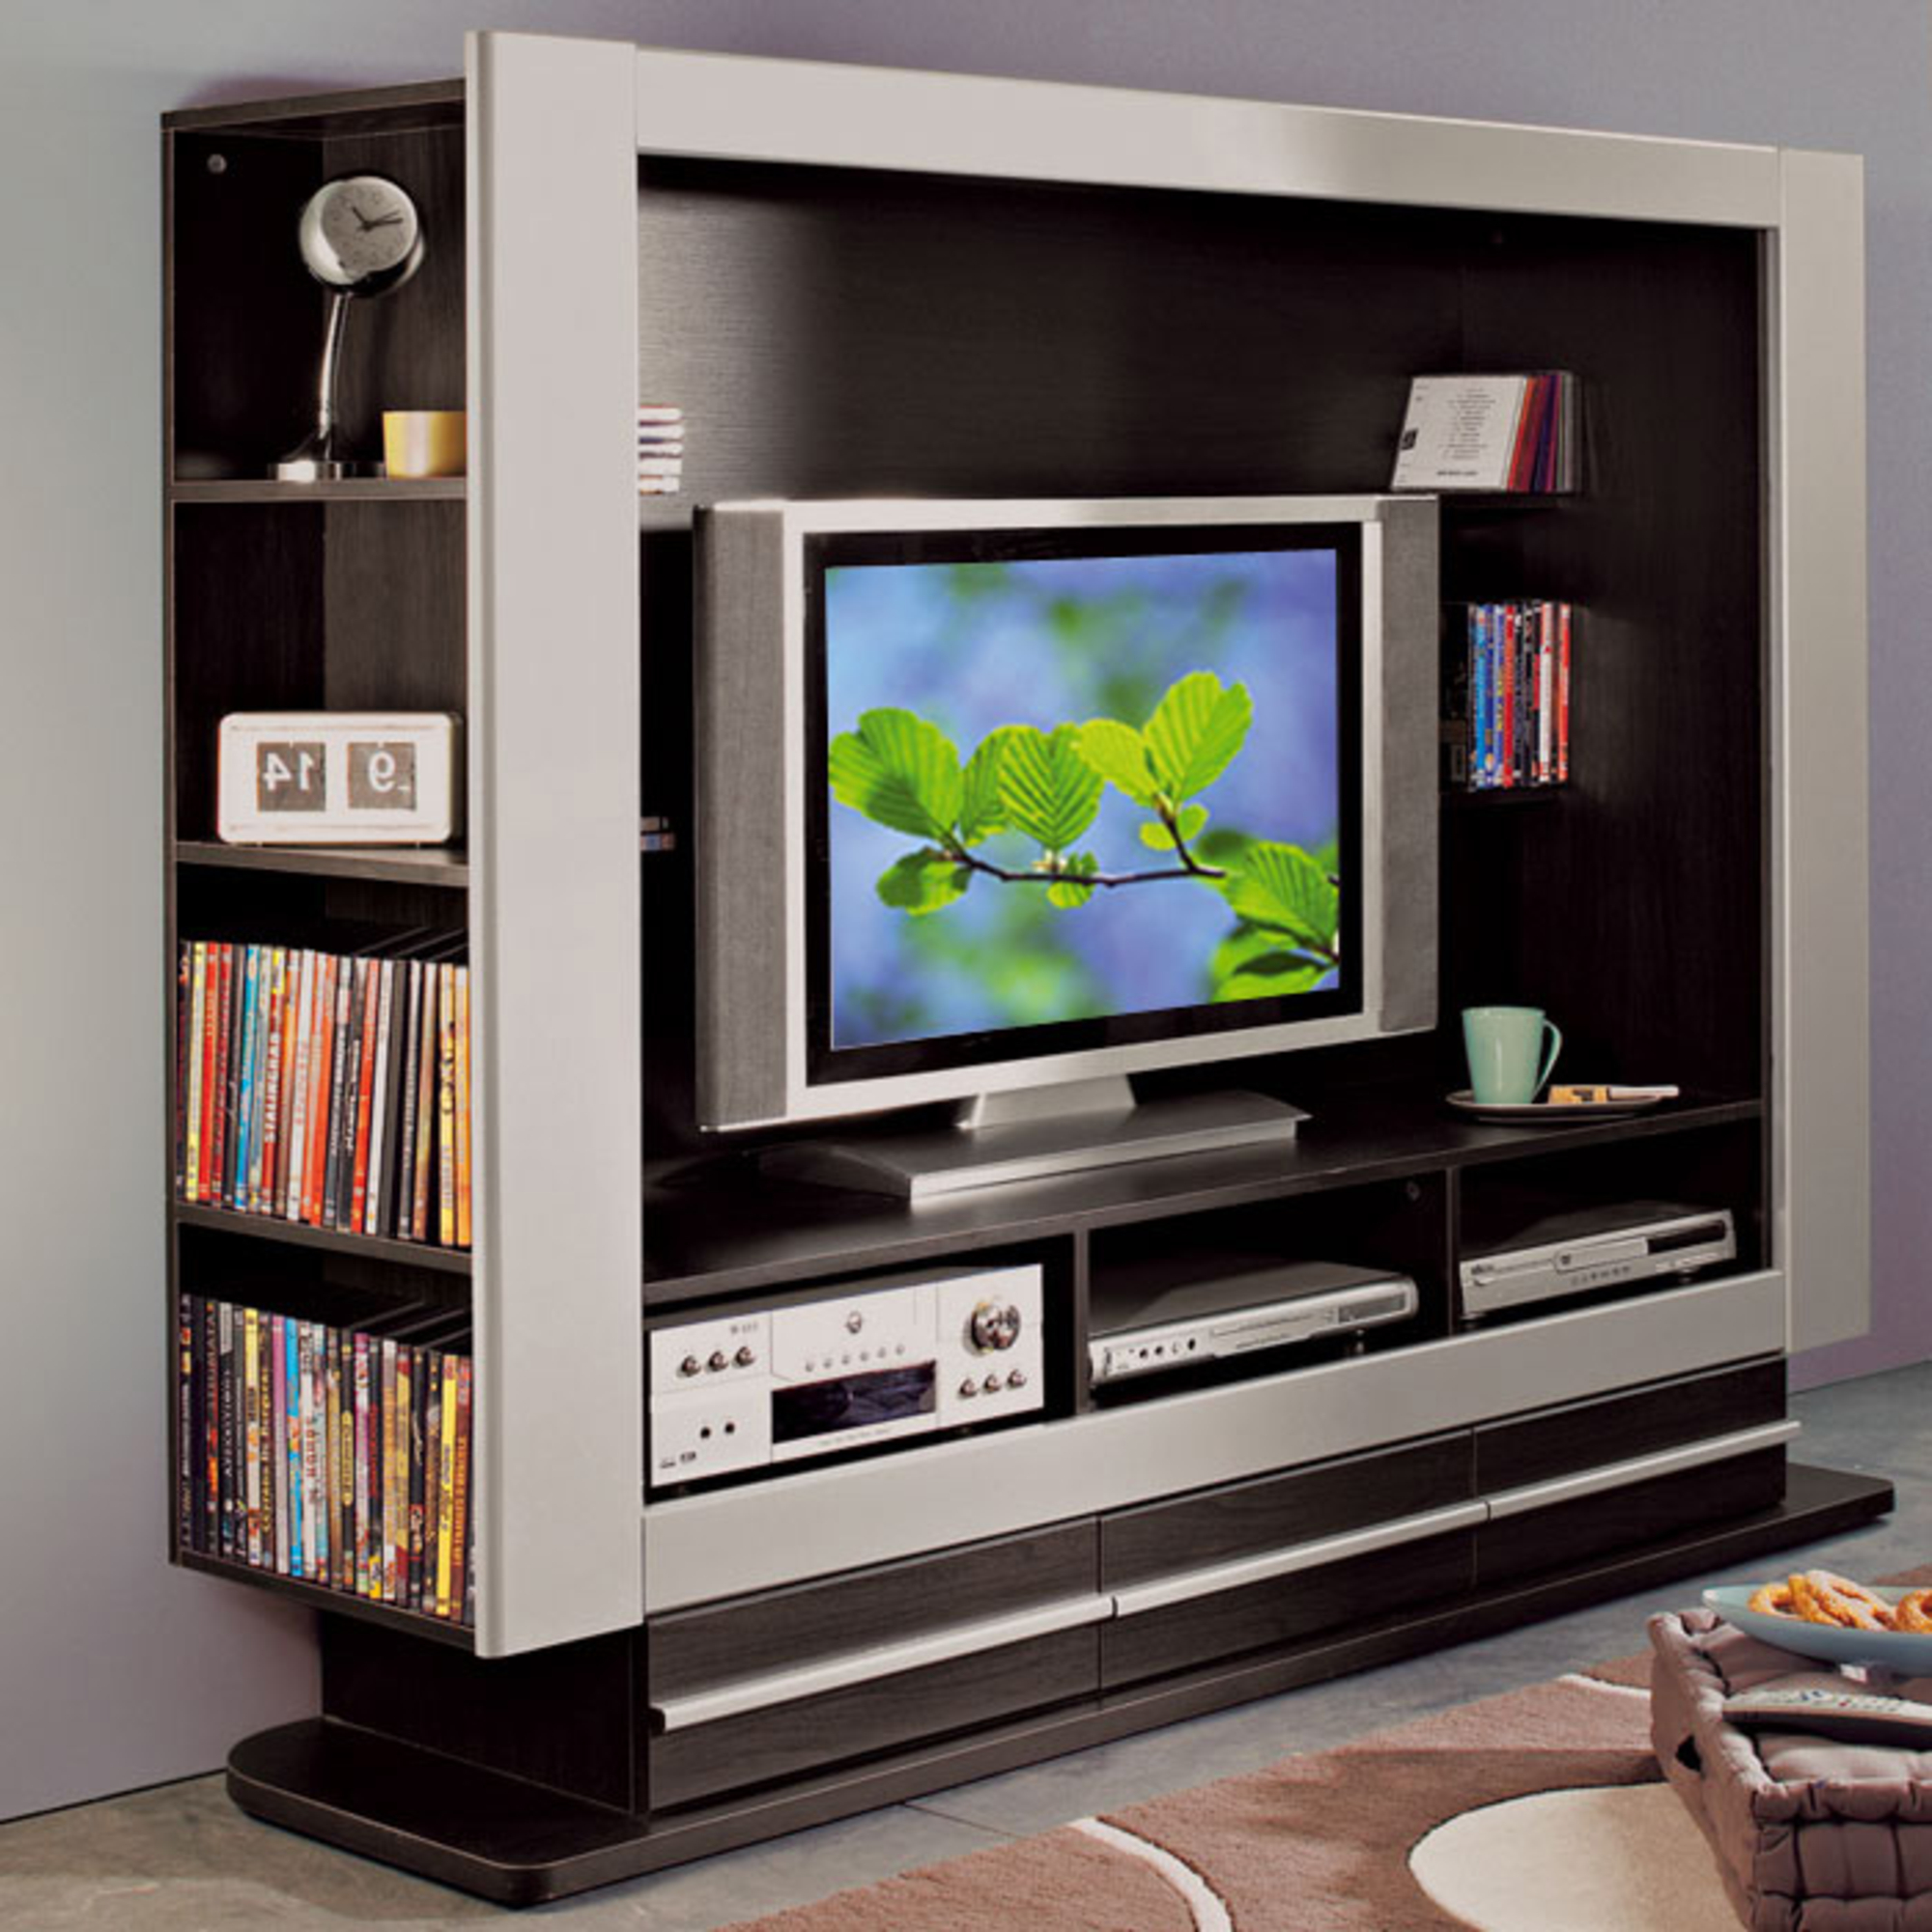 meuble tv ecran plat suspendu meilleures images d. Black Bedroom Furniture Sets. Home Design Ideas